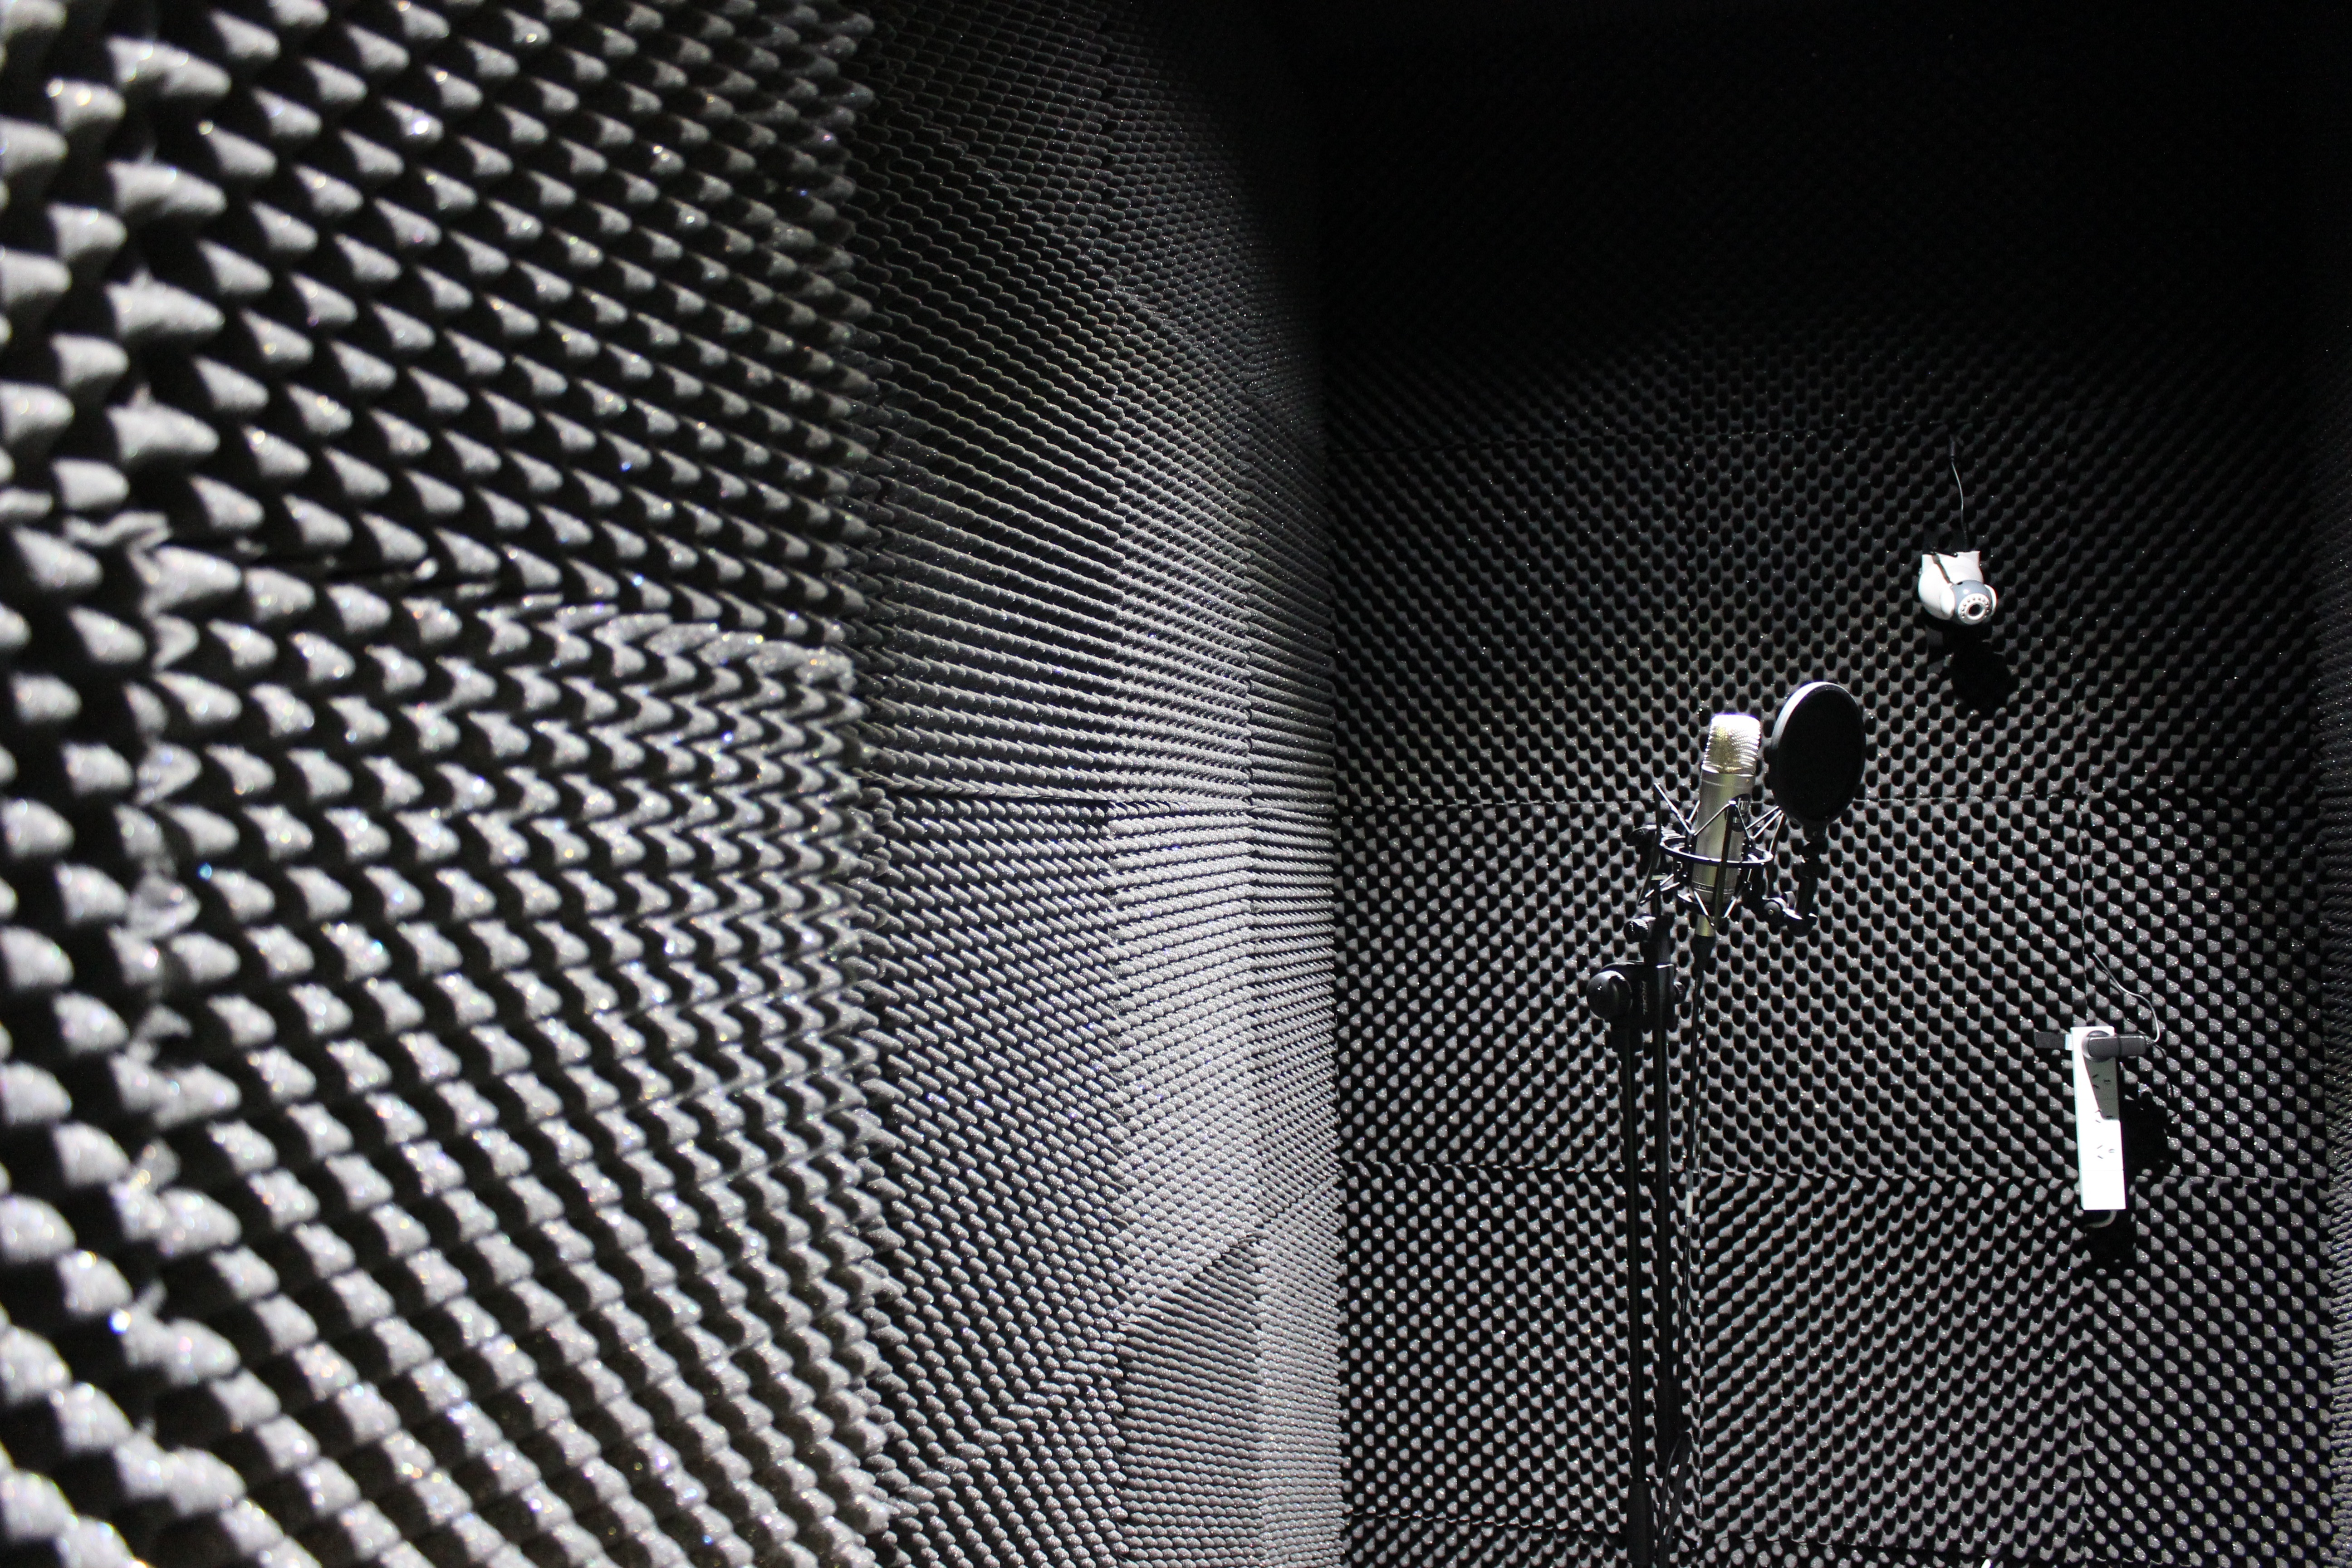 Voice-over Booth